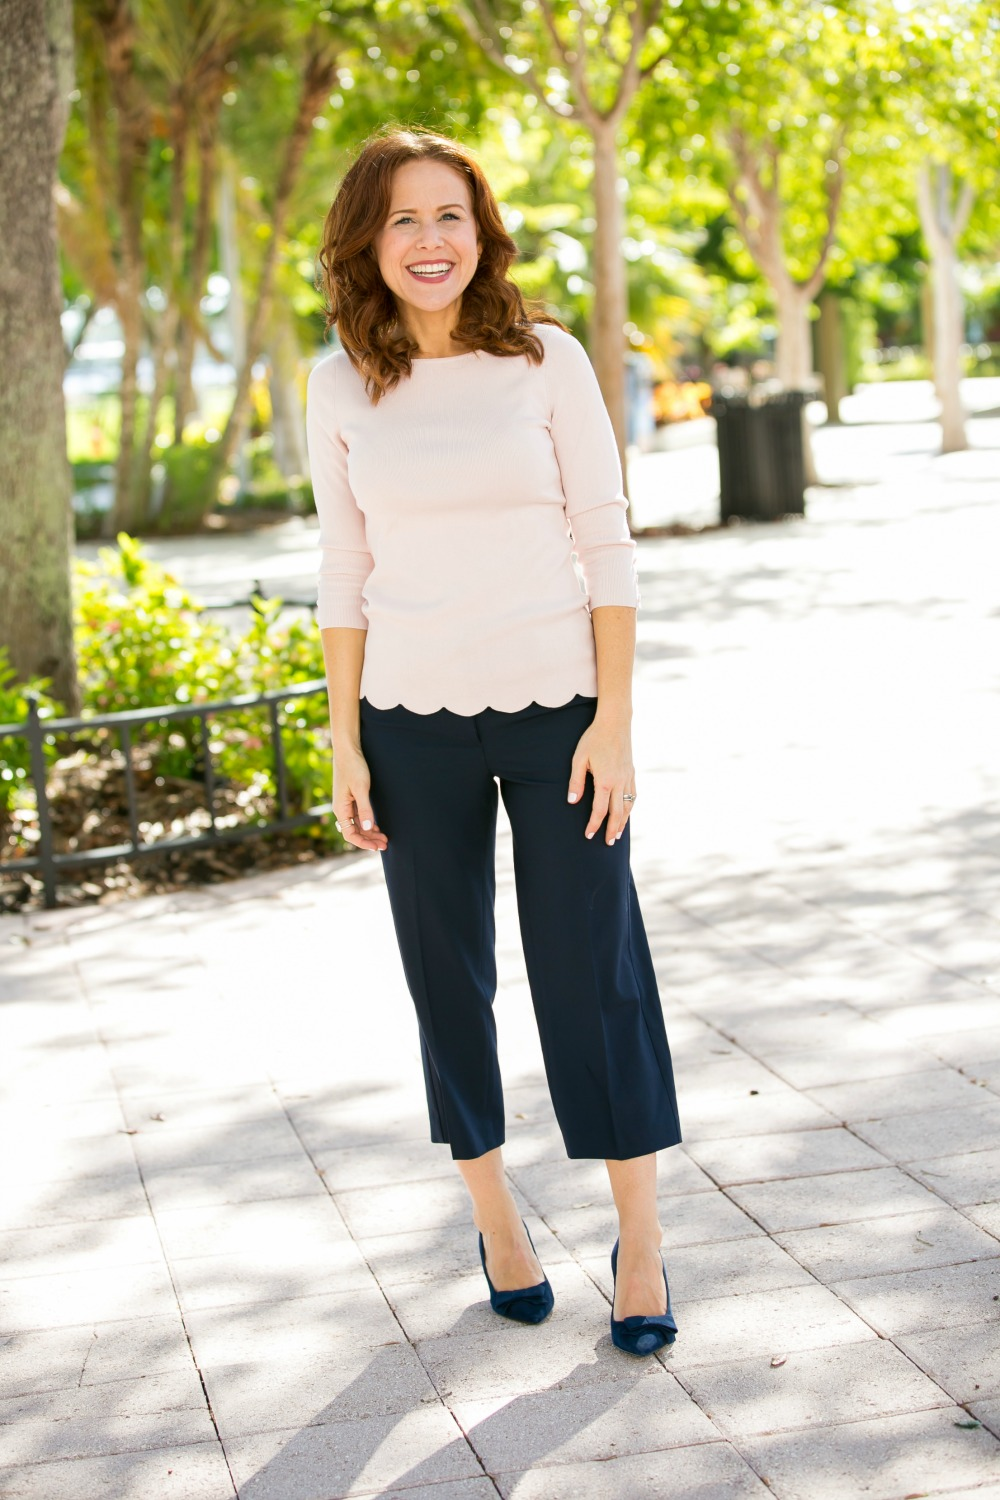 Scalloped sweater and cropped pants for work #workoutfit #workstyle #fallstyle